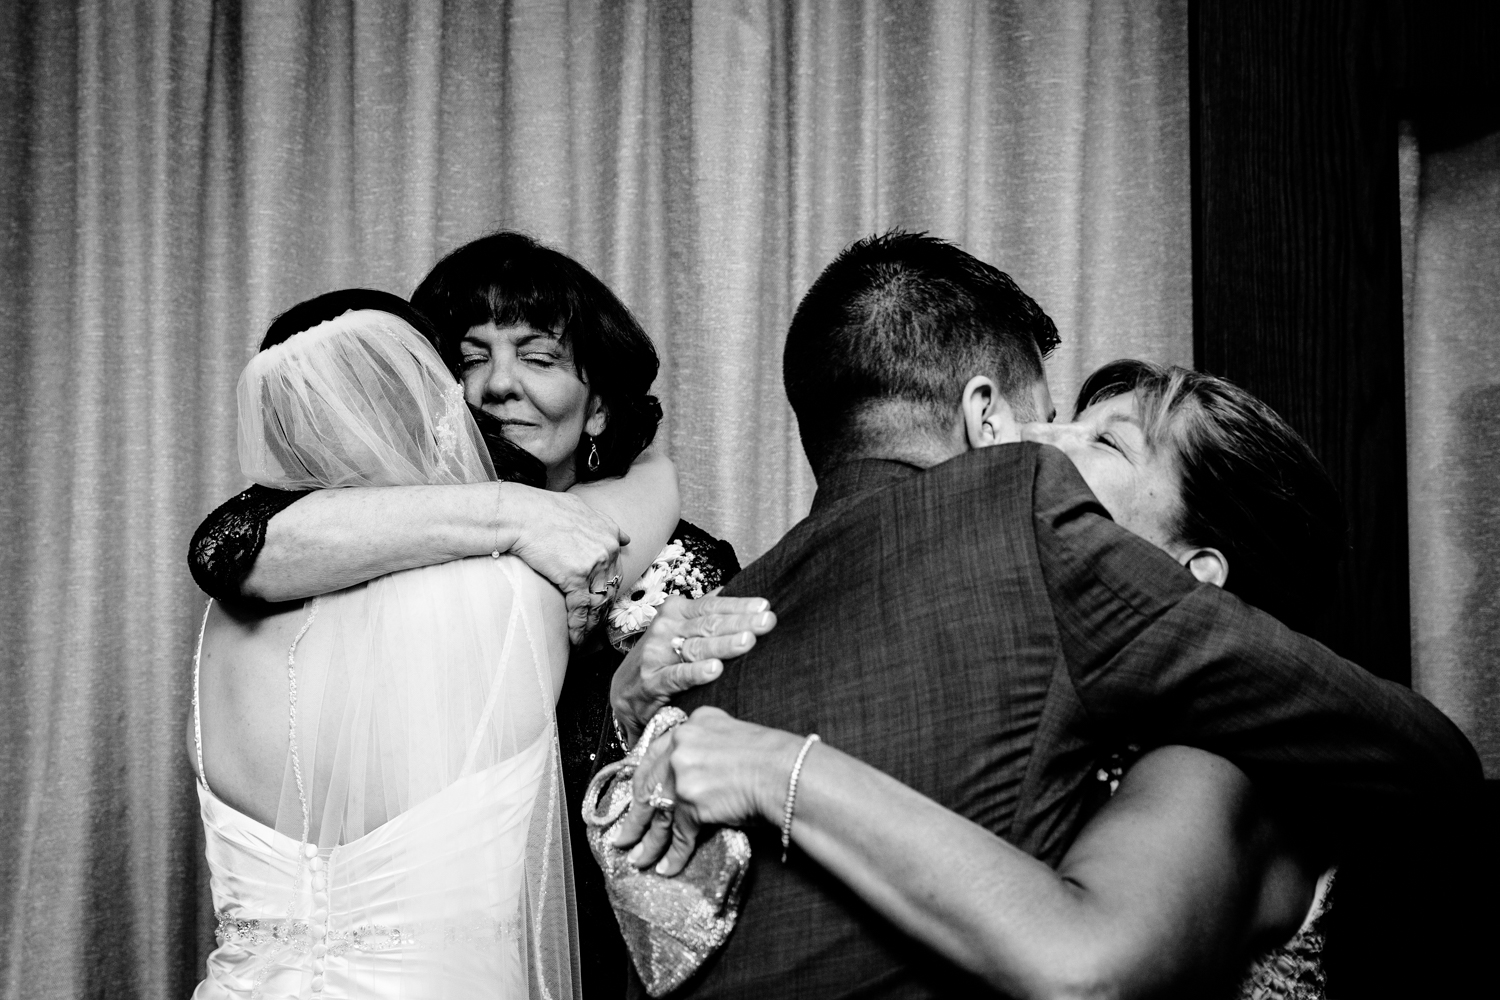 The bride and groom hug their mothers after the ceremony